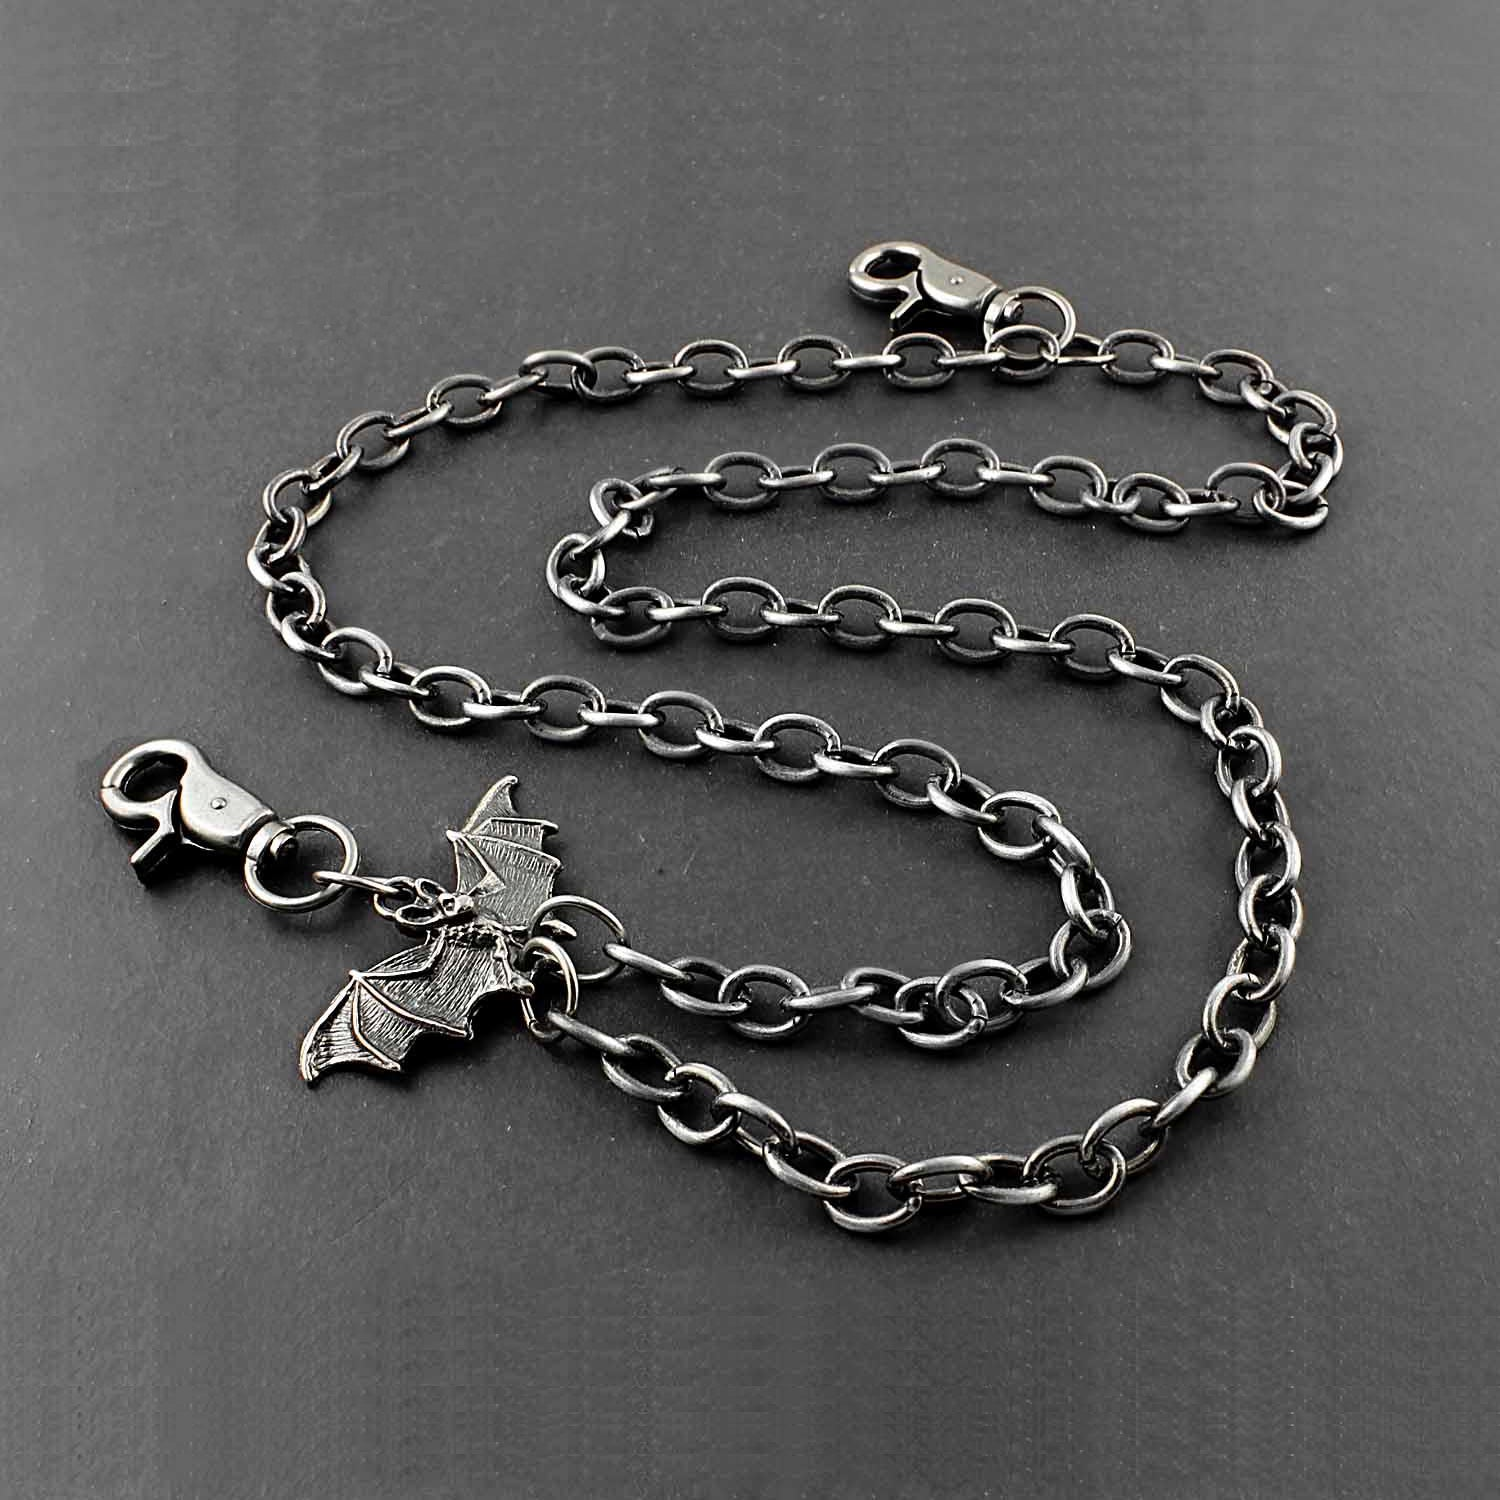 Solid Stainless Steel Bat Wallet Chain Cool Punk Rock Biker Trucker Wallet Chain Trucker Wallet Chain for Men